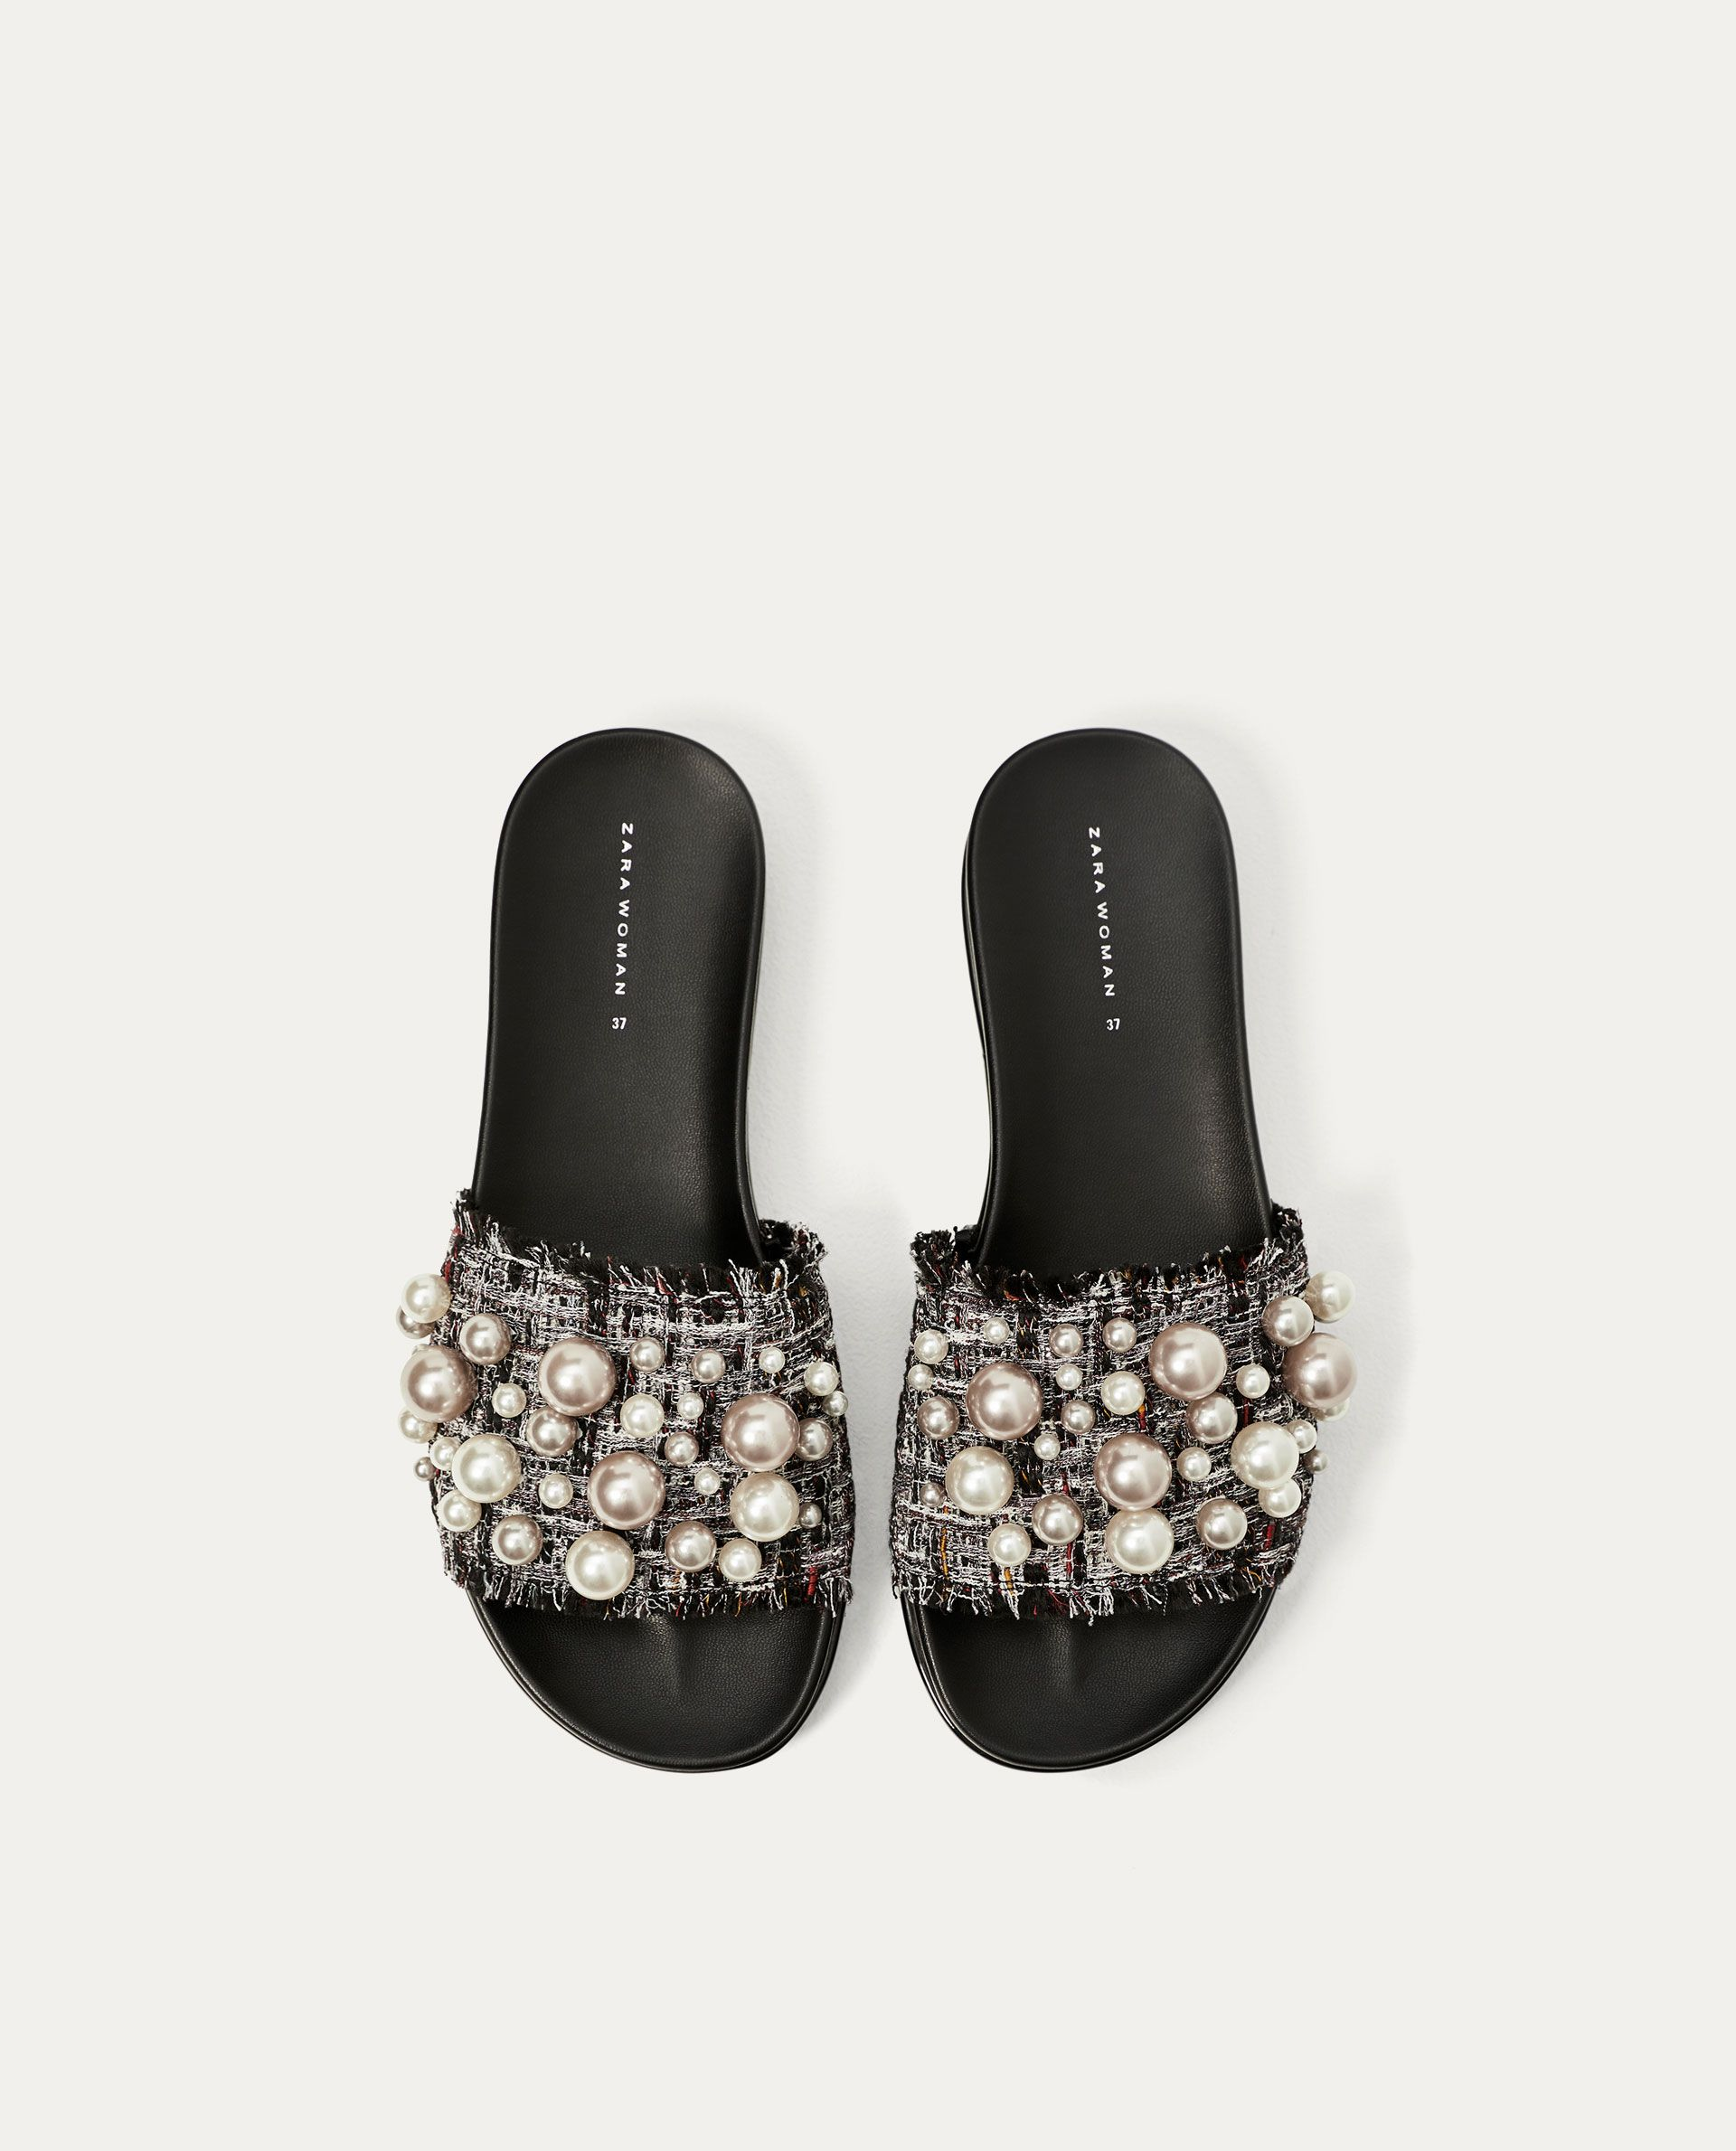 74252c24c47 ZARA - COLLECTION AW 17 - SLIDES WITH FAUX PEARLS Pearl Sandals